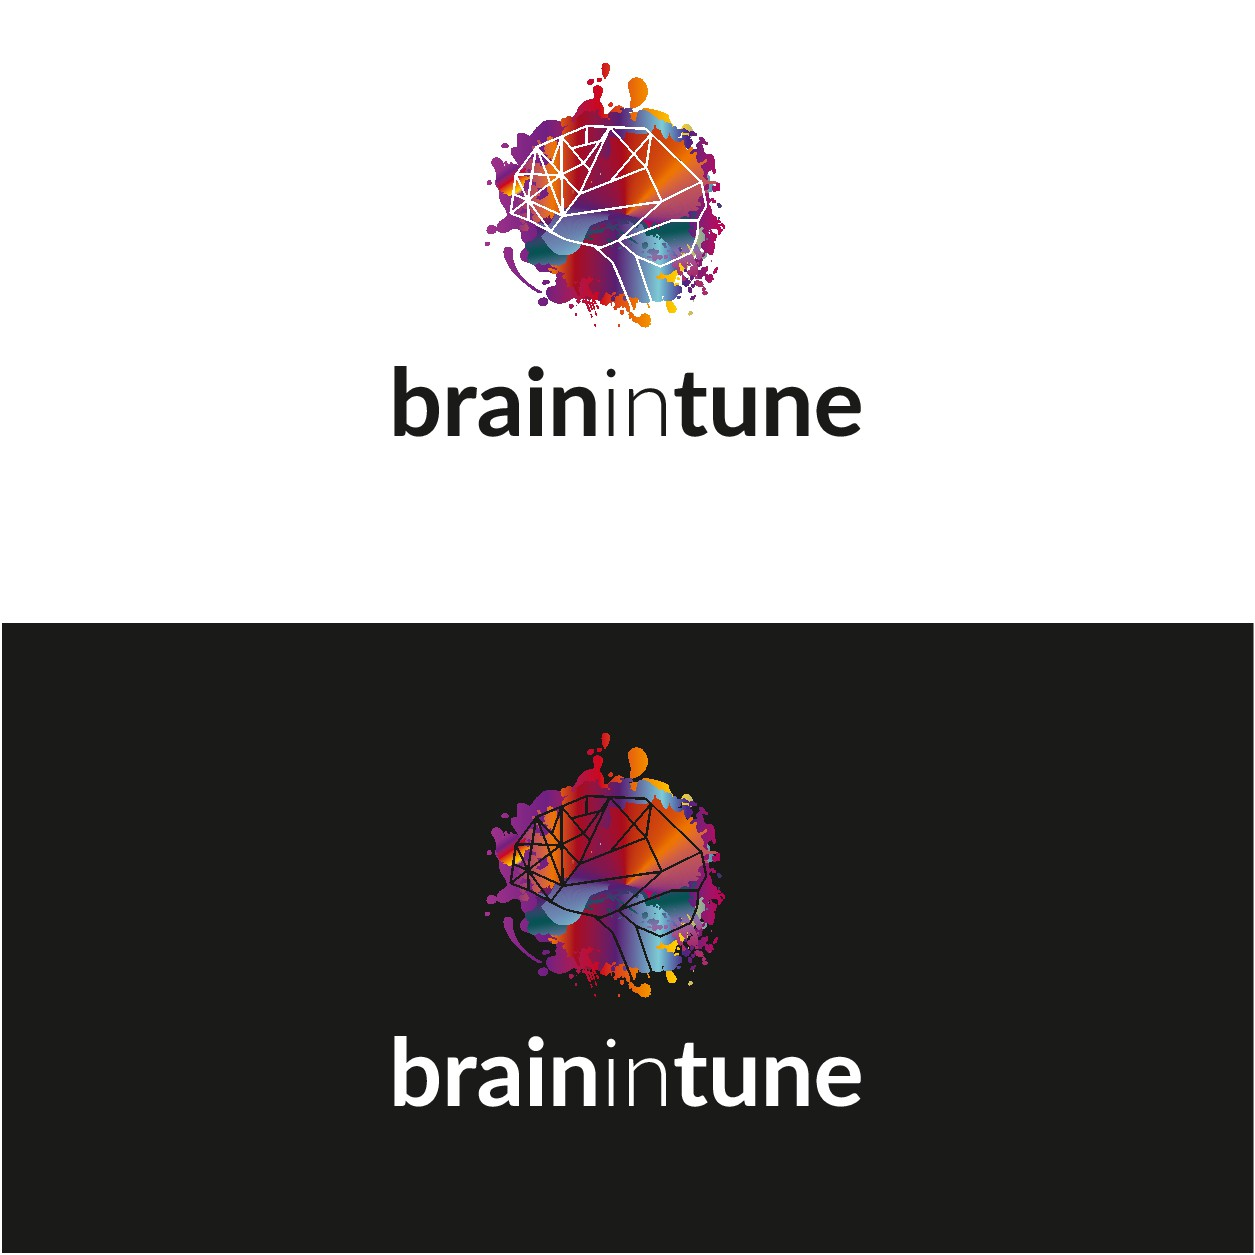 Simple but sophisticated logo needed to appeal to those who care about brain health